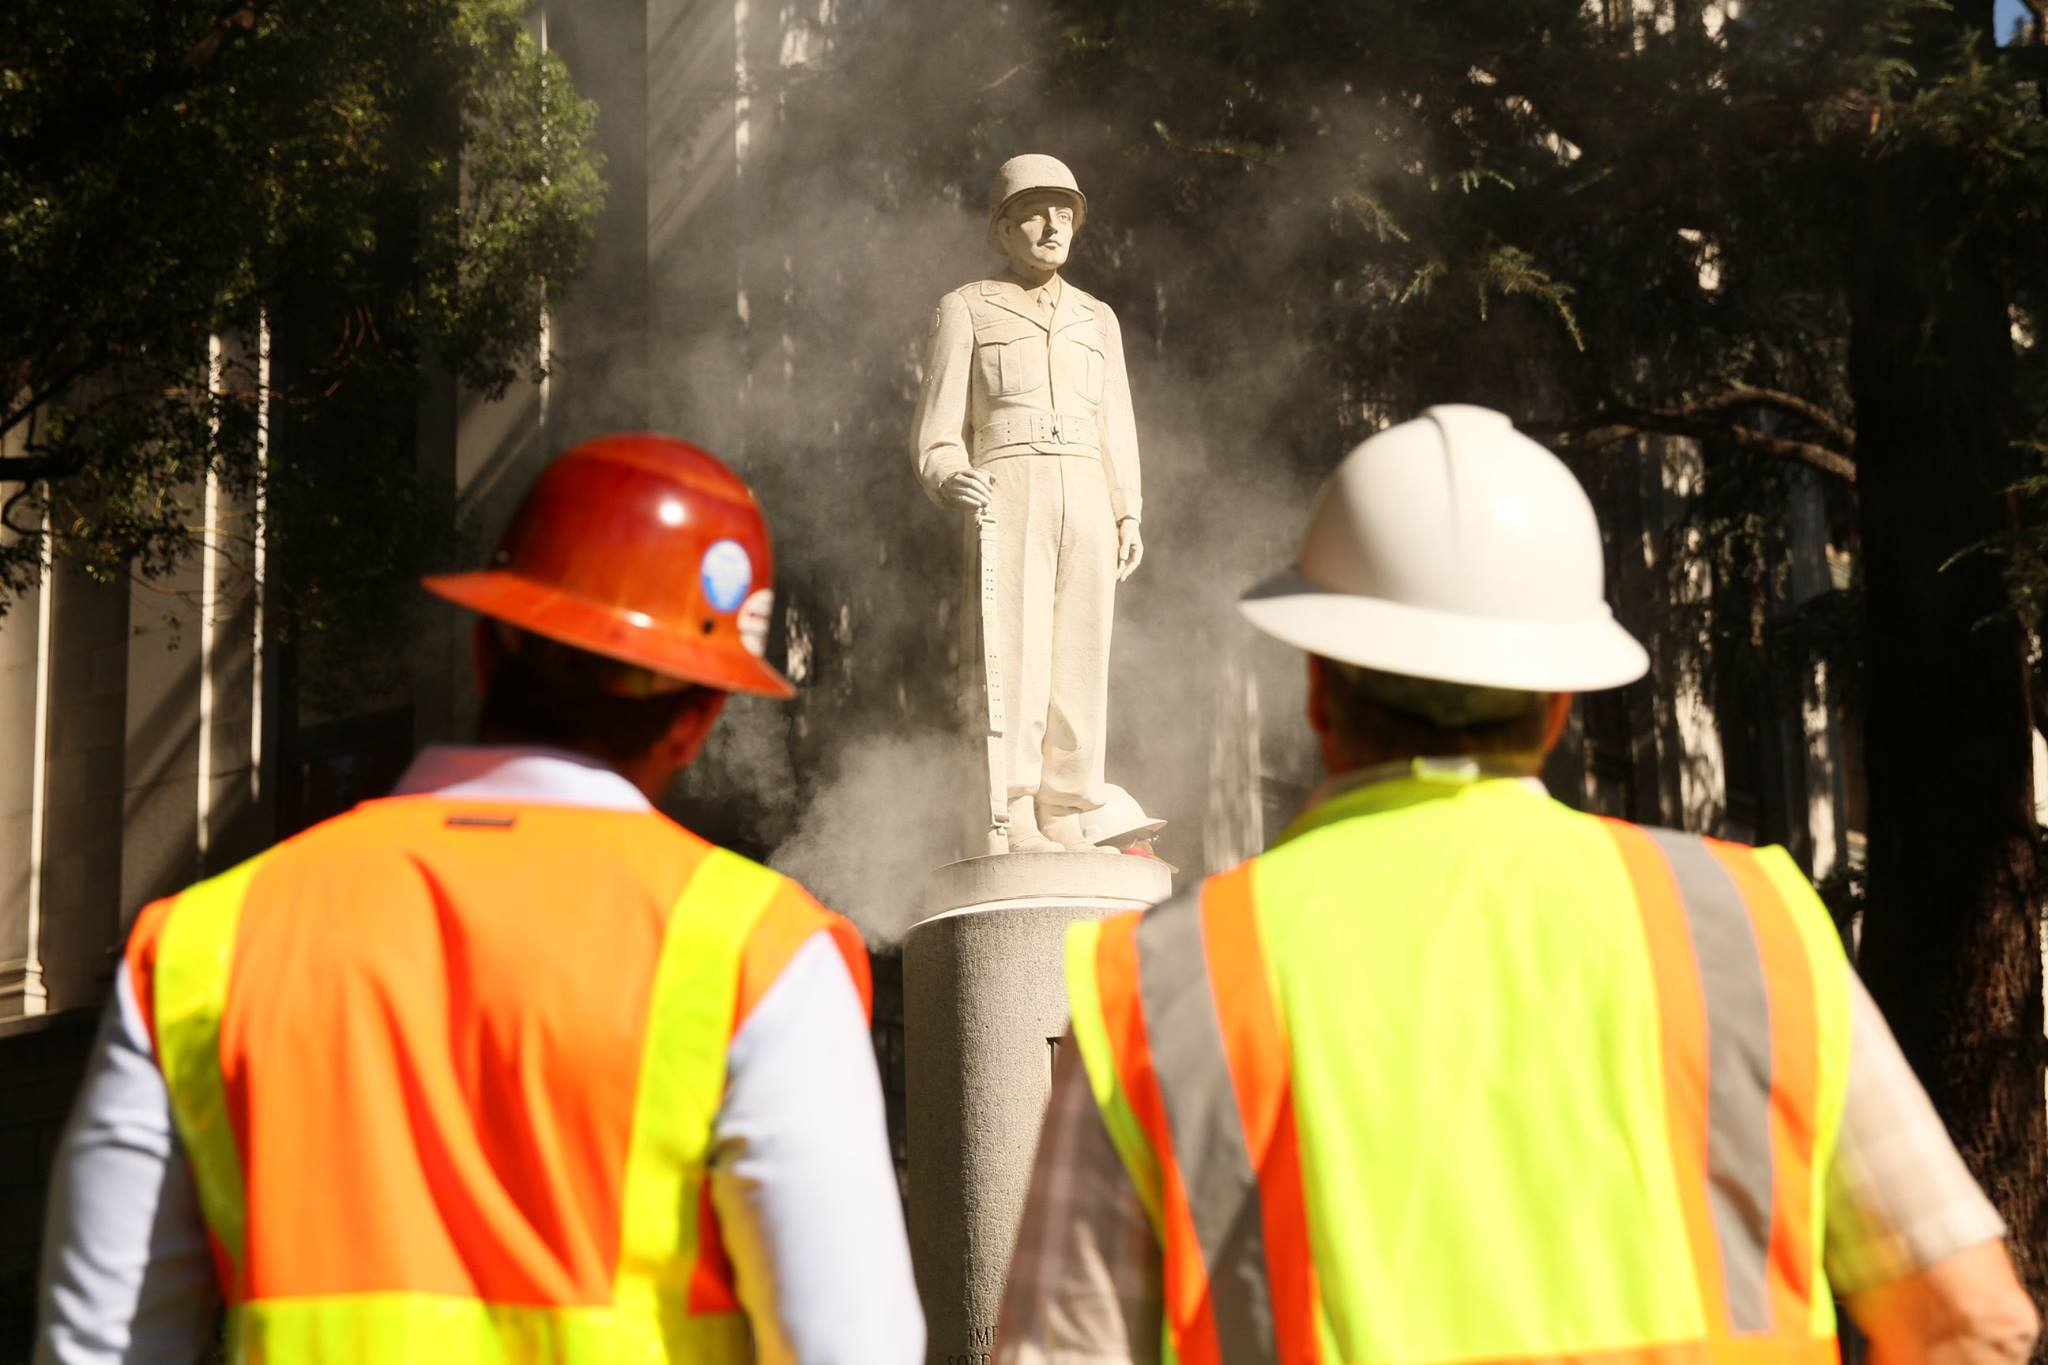 Workers prepare to remove the statue in September 2016 (official Facebook page).